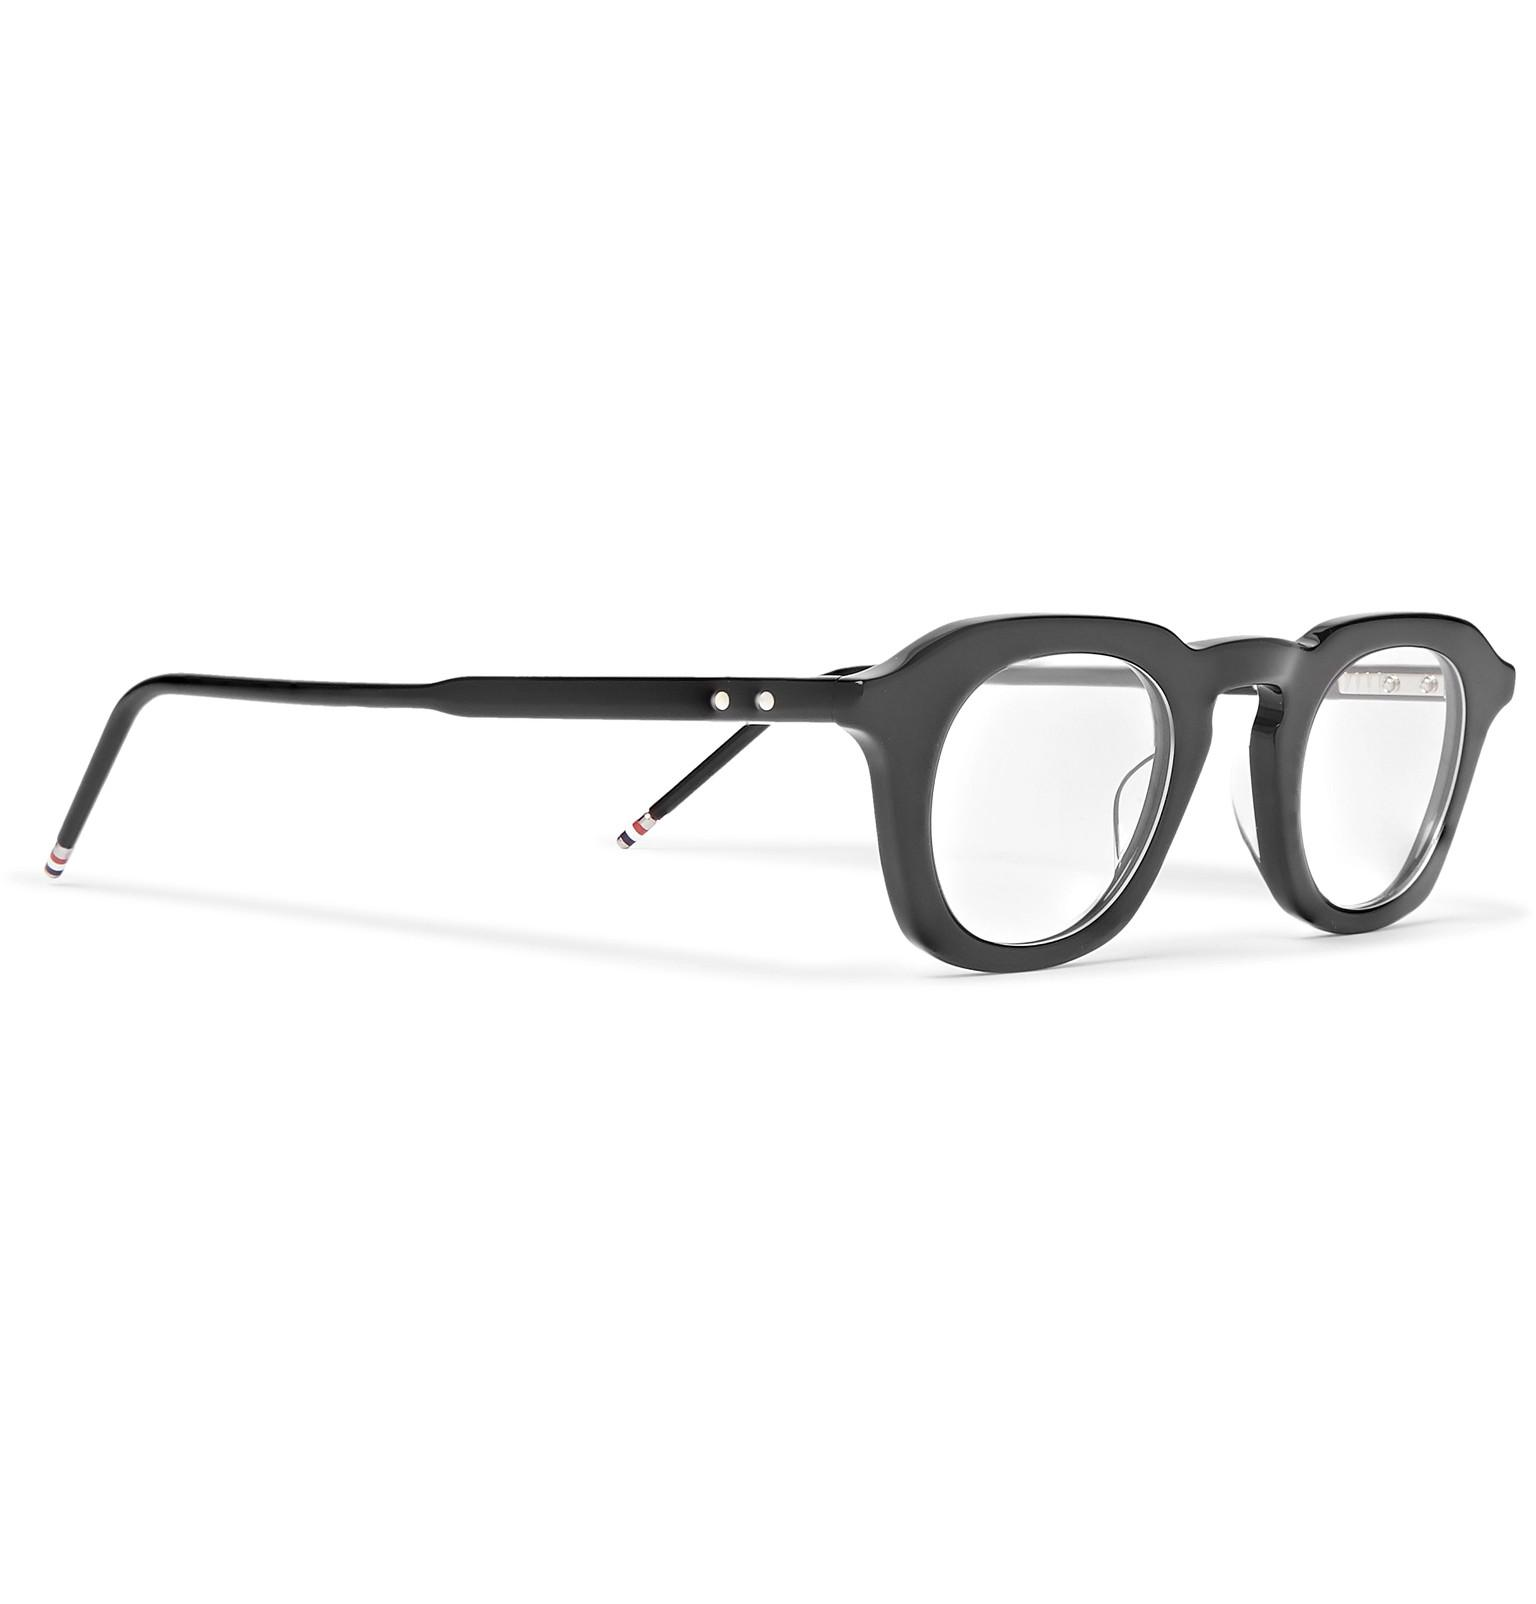 41a252202d8 Thom Browne - Black Square-frame Acetate Optical Glasses for Men - Lyst.  View fullscreen